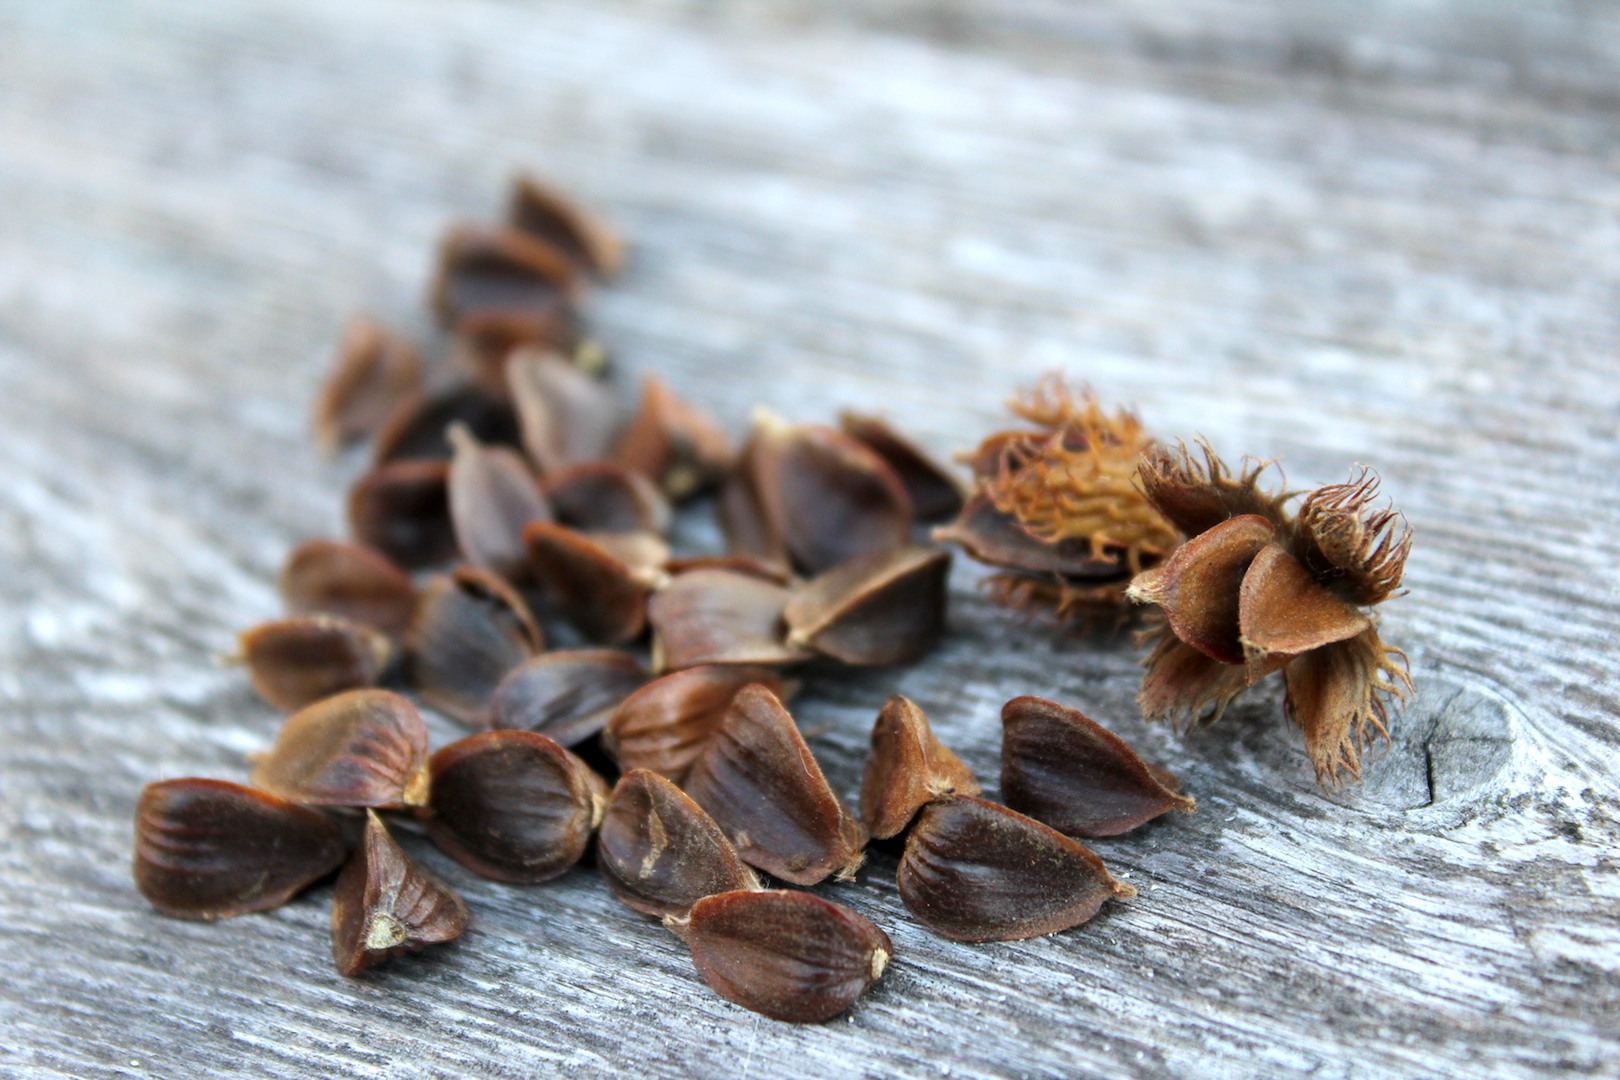 Pictures of beech nuts